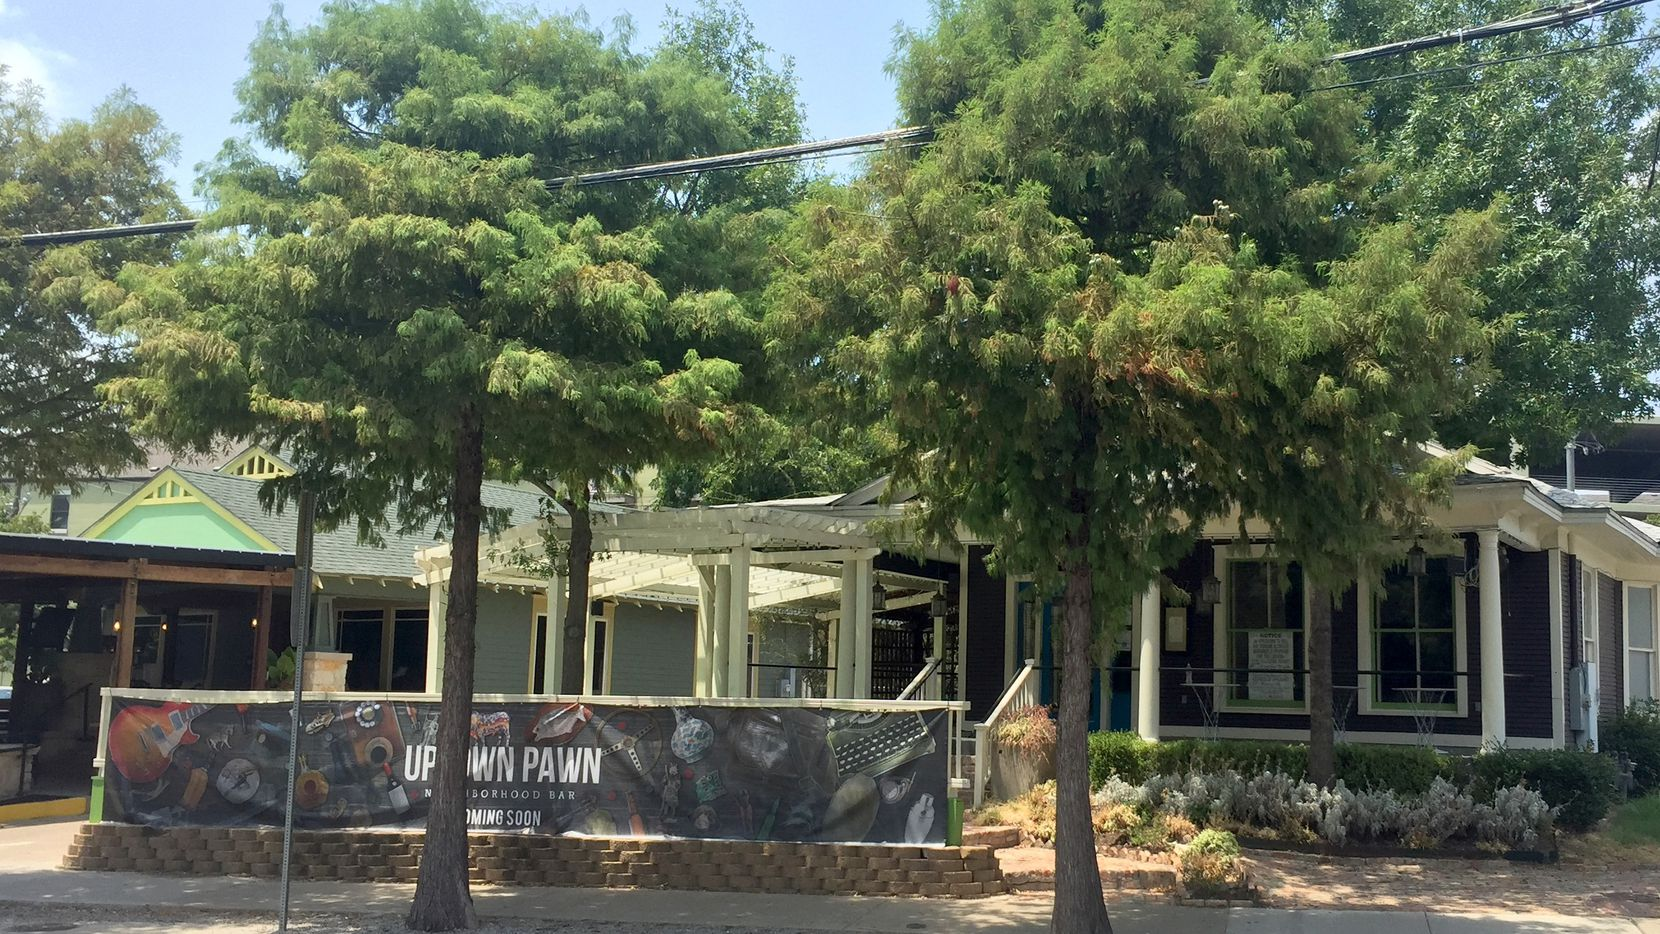 Uptown Pawn will open as part of McKinney Avenue's bustling bar district.